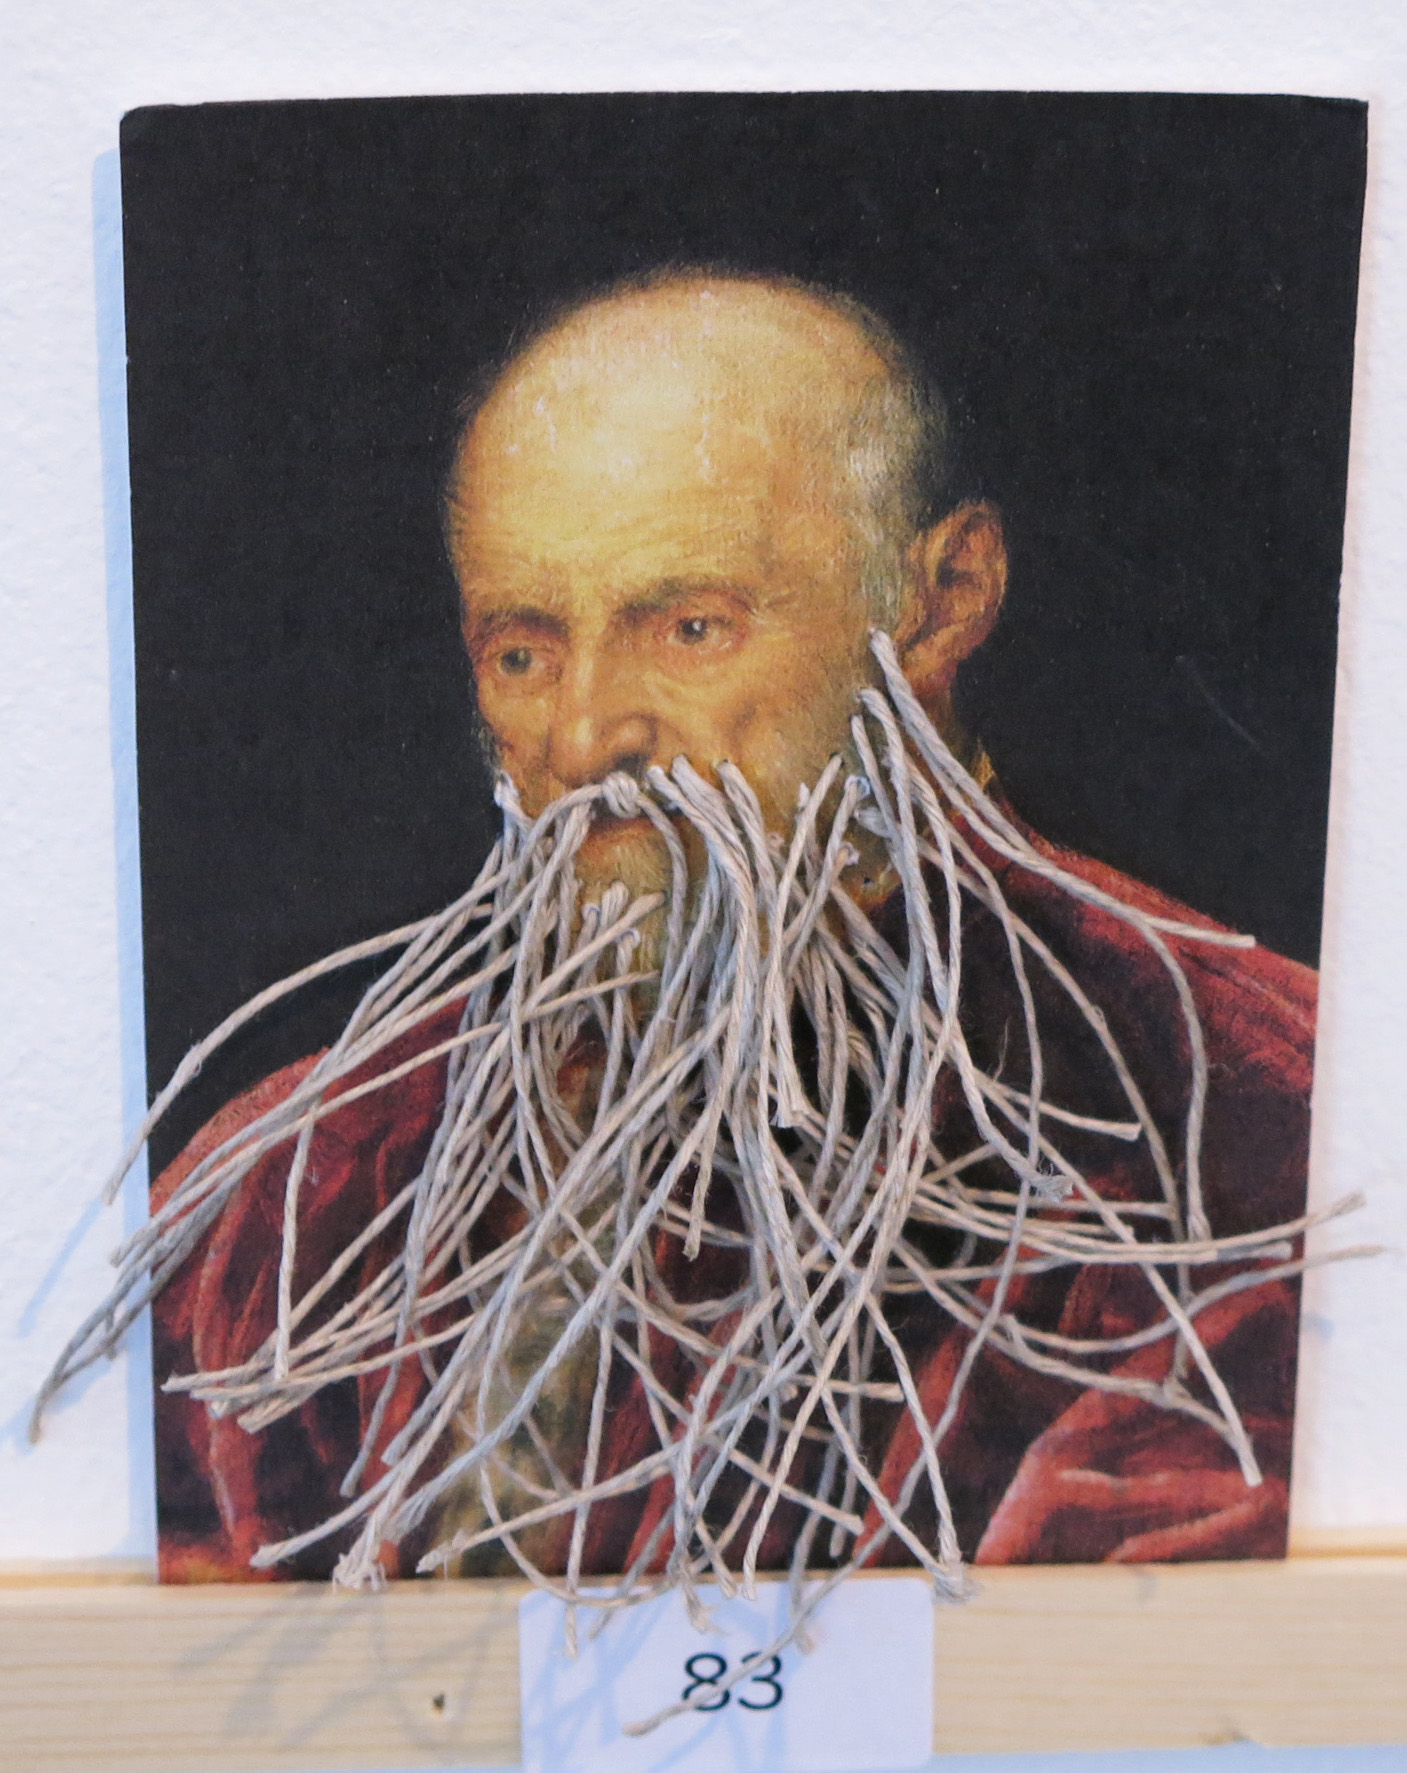 Secret beard art